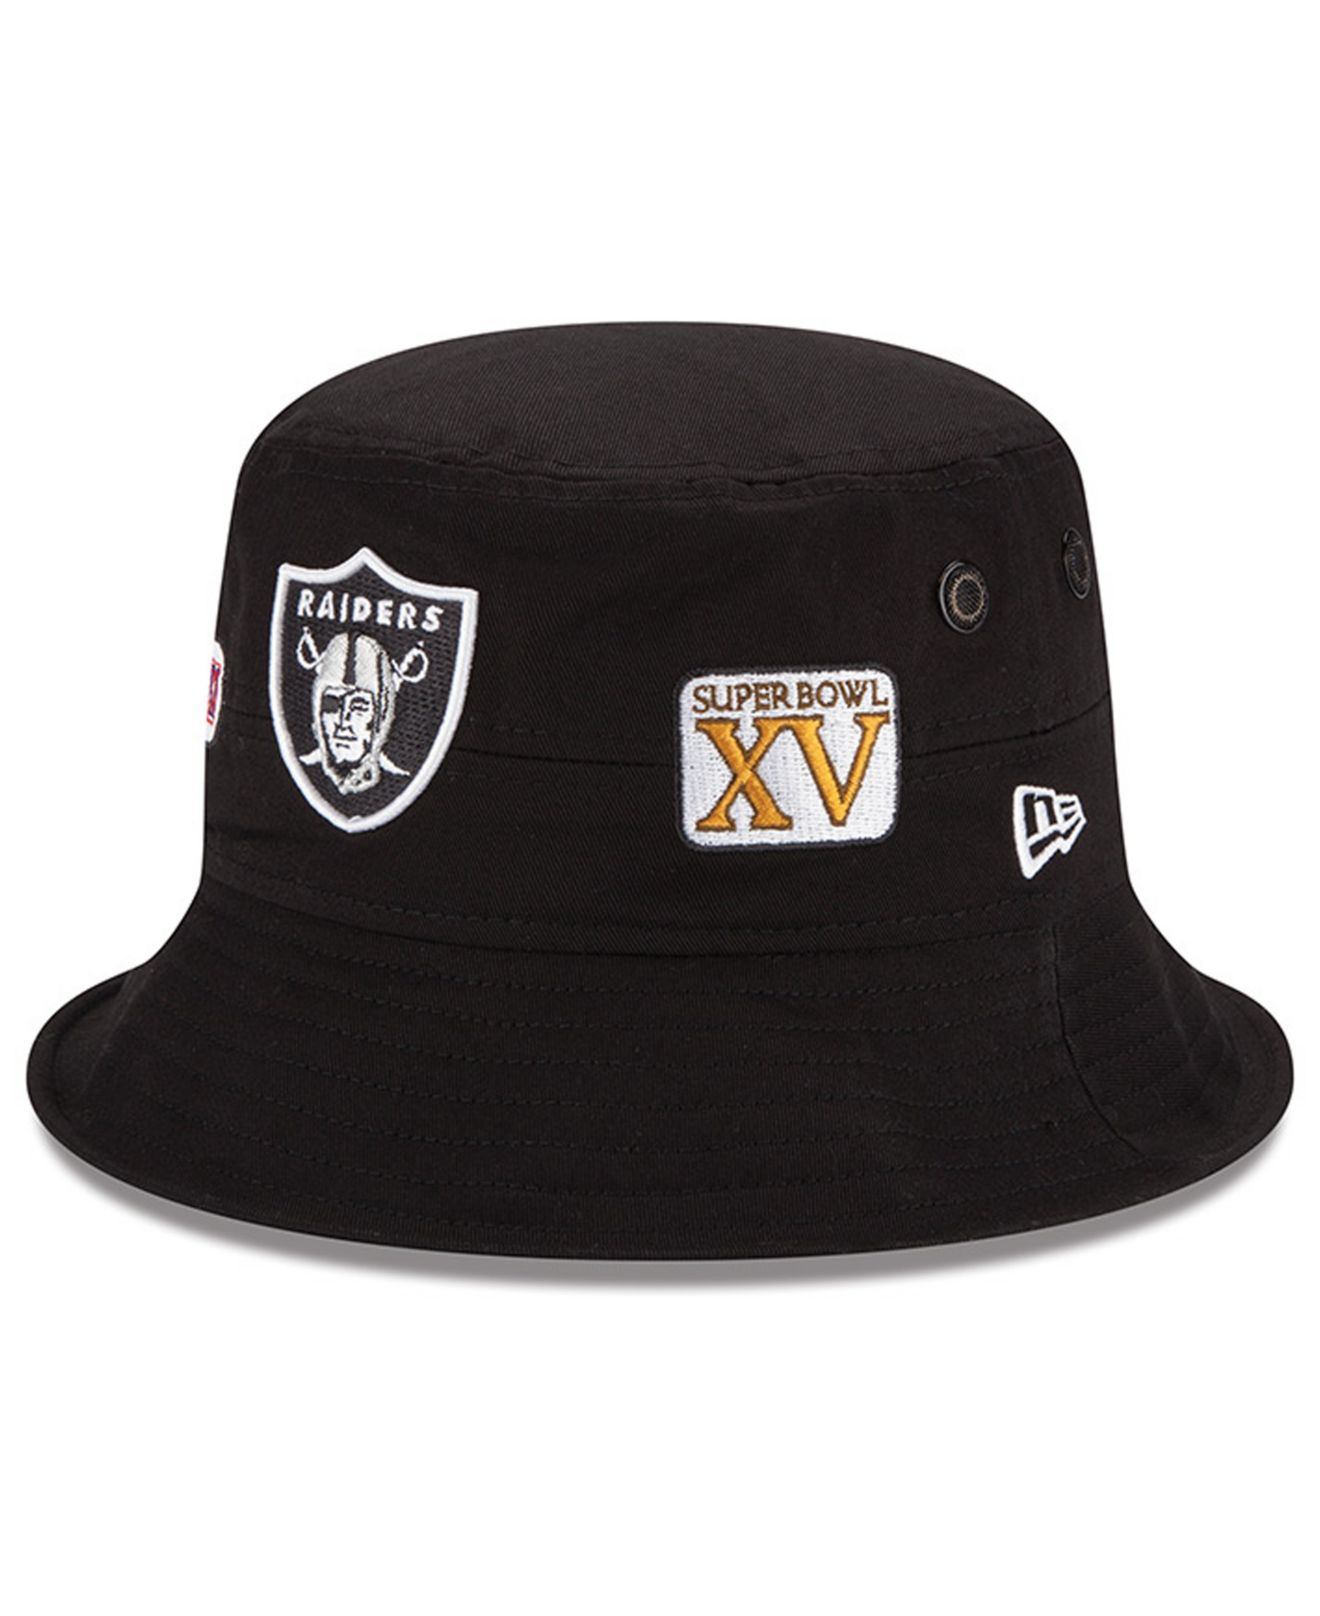 check out c97f9 8a485 ... spain lyst ktz oakland raiders multi super bowl champ bucket hat in  d78f2 3bf5c